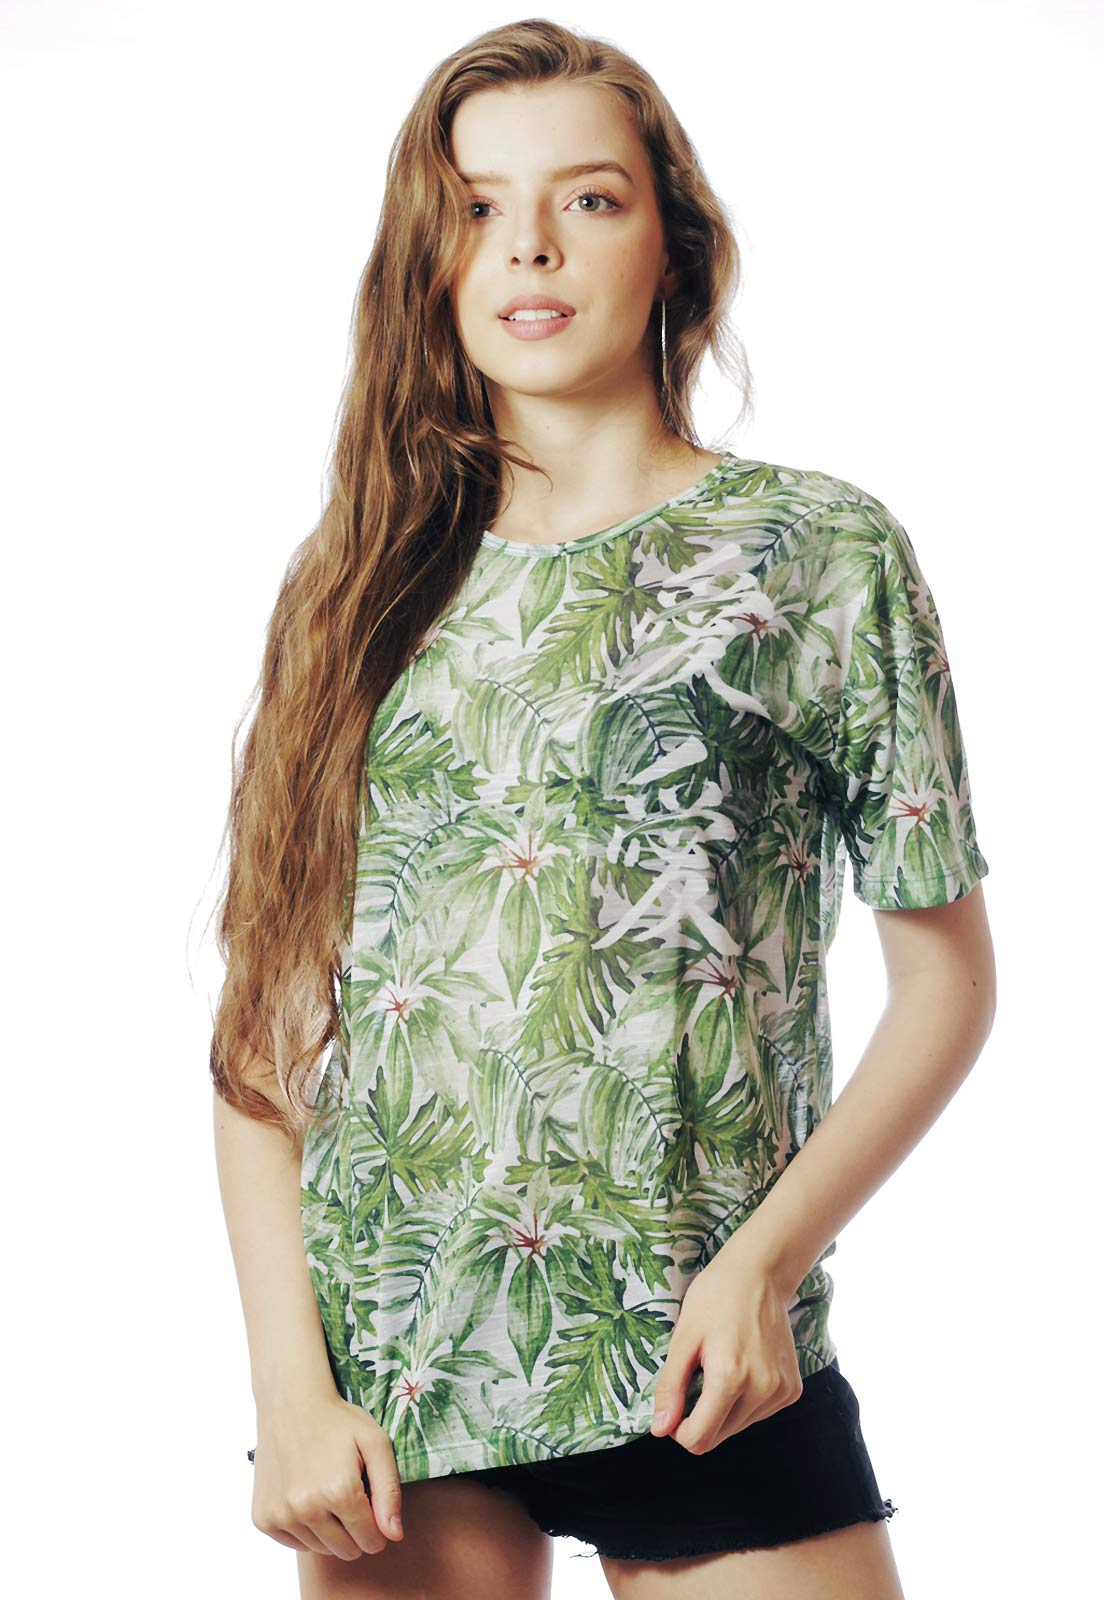 CAMISETA ESTAMPADA FULL PRINT UNISSEX TROPICAL FUN